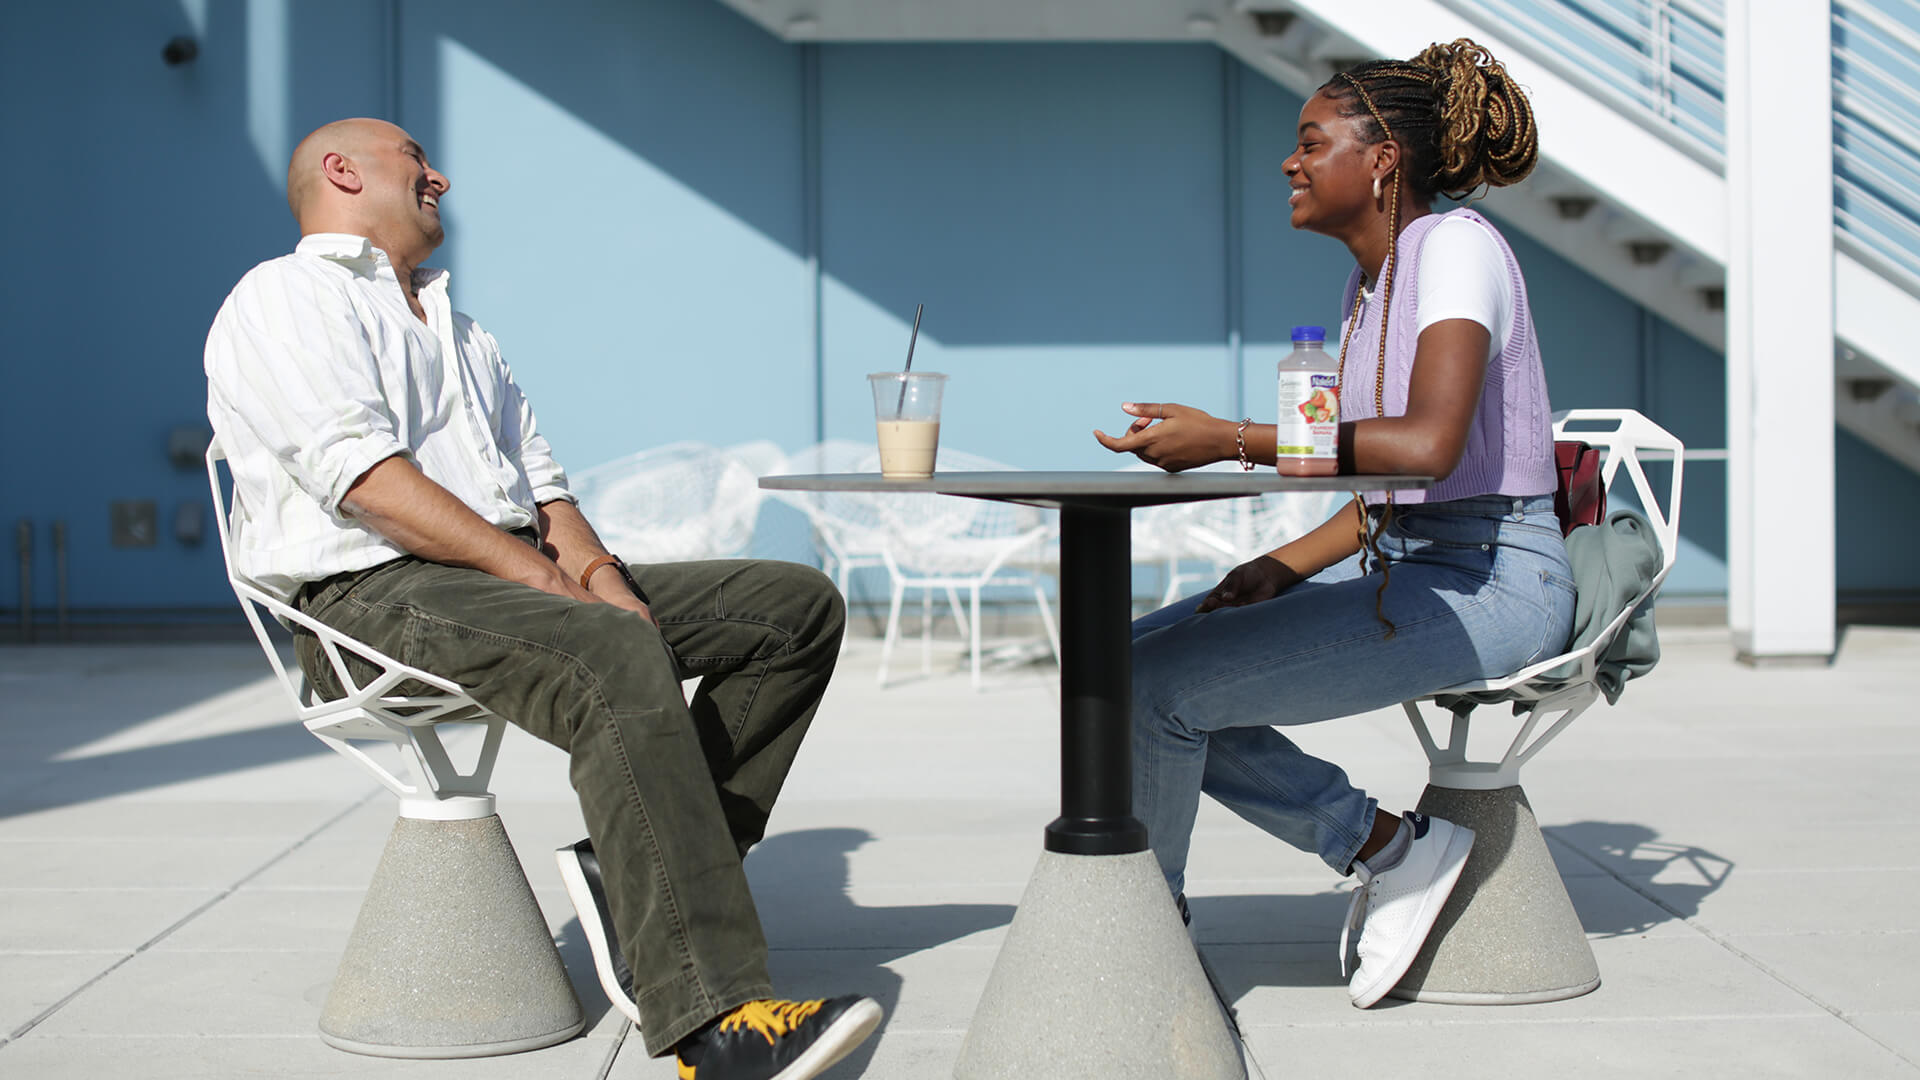 A man and woman sit outside chatting. The man is laughing.